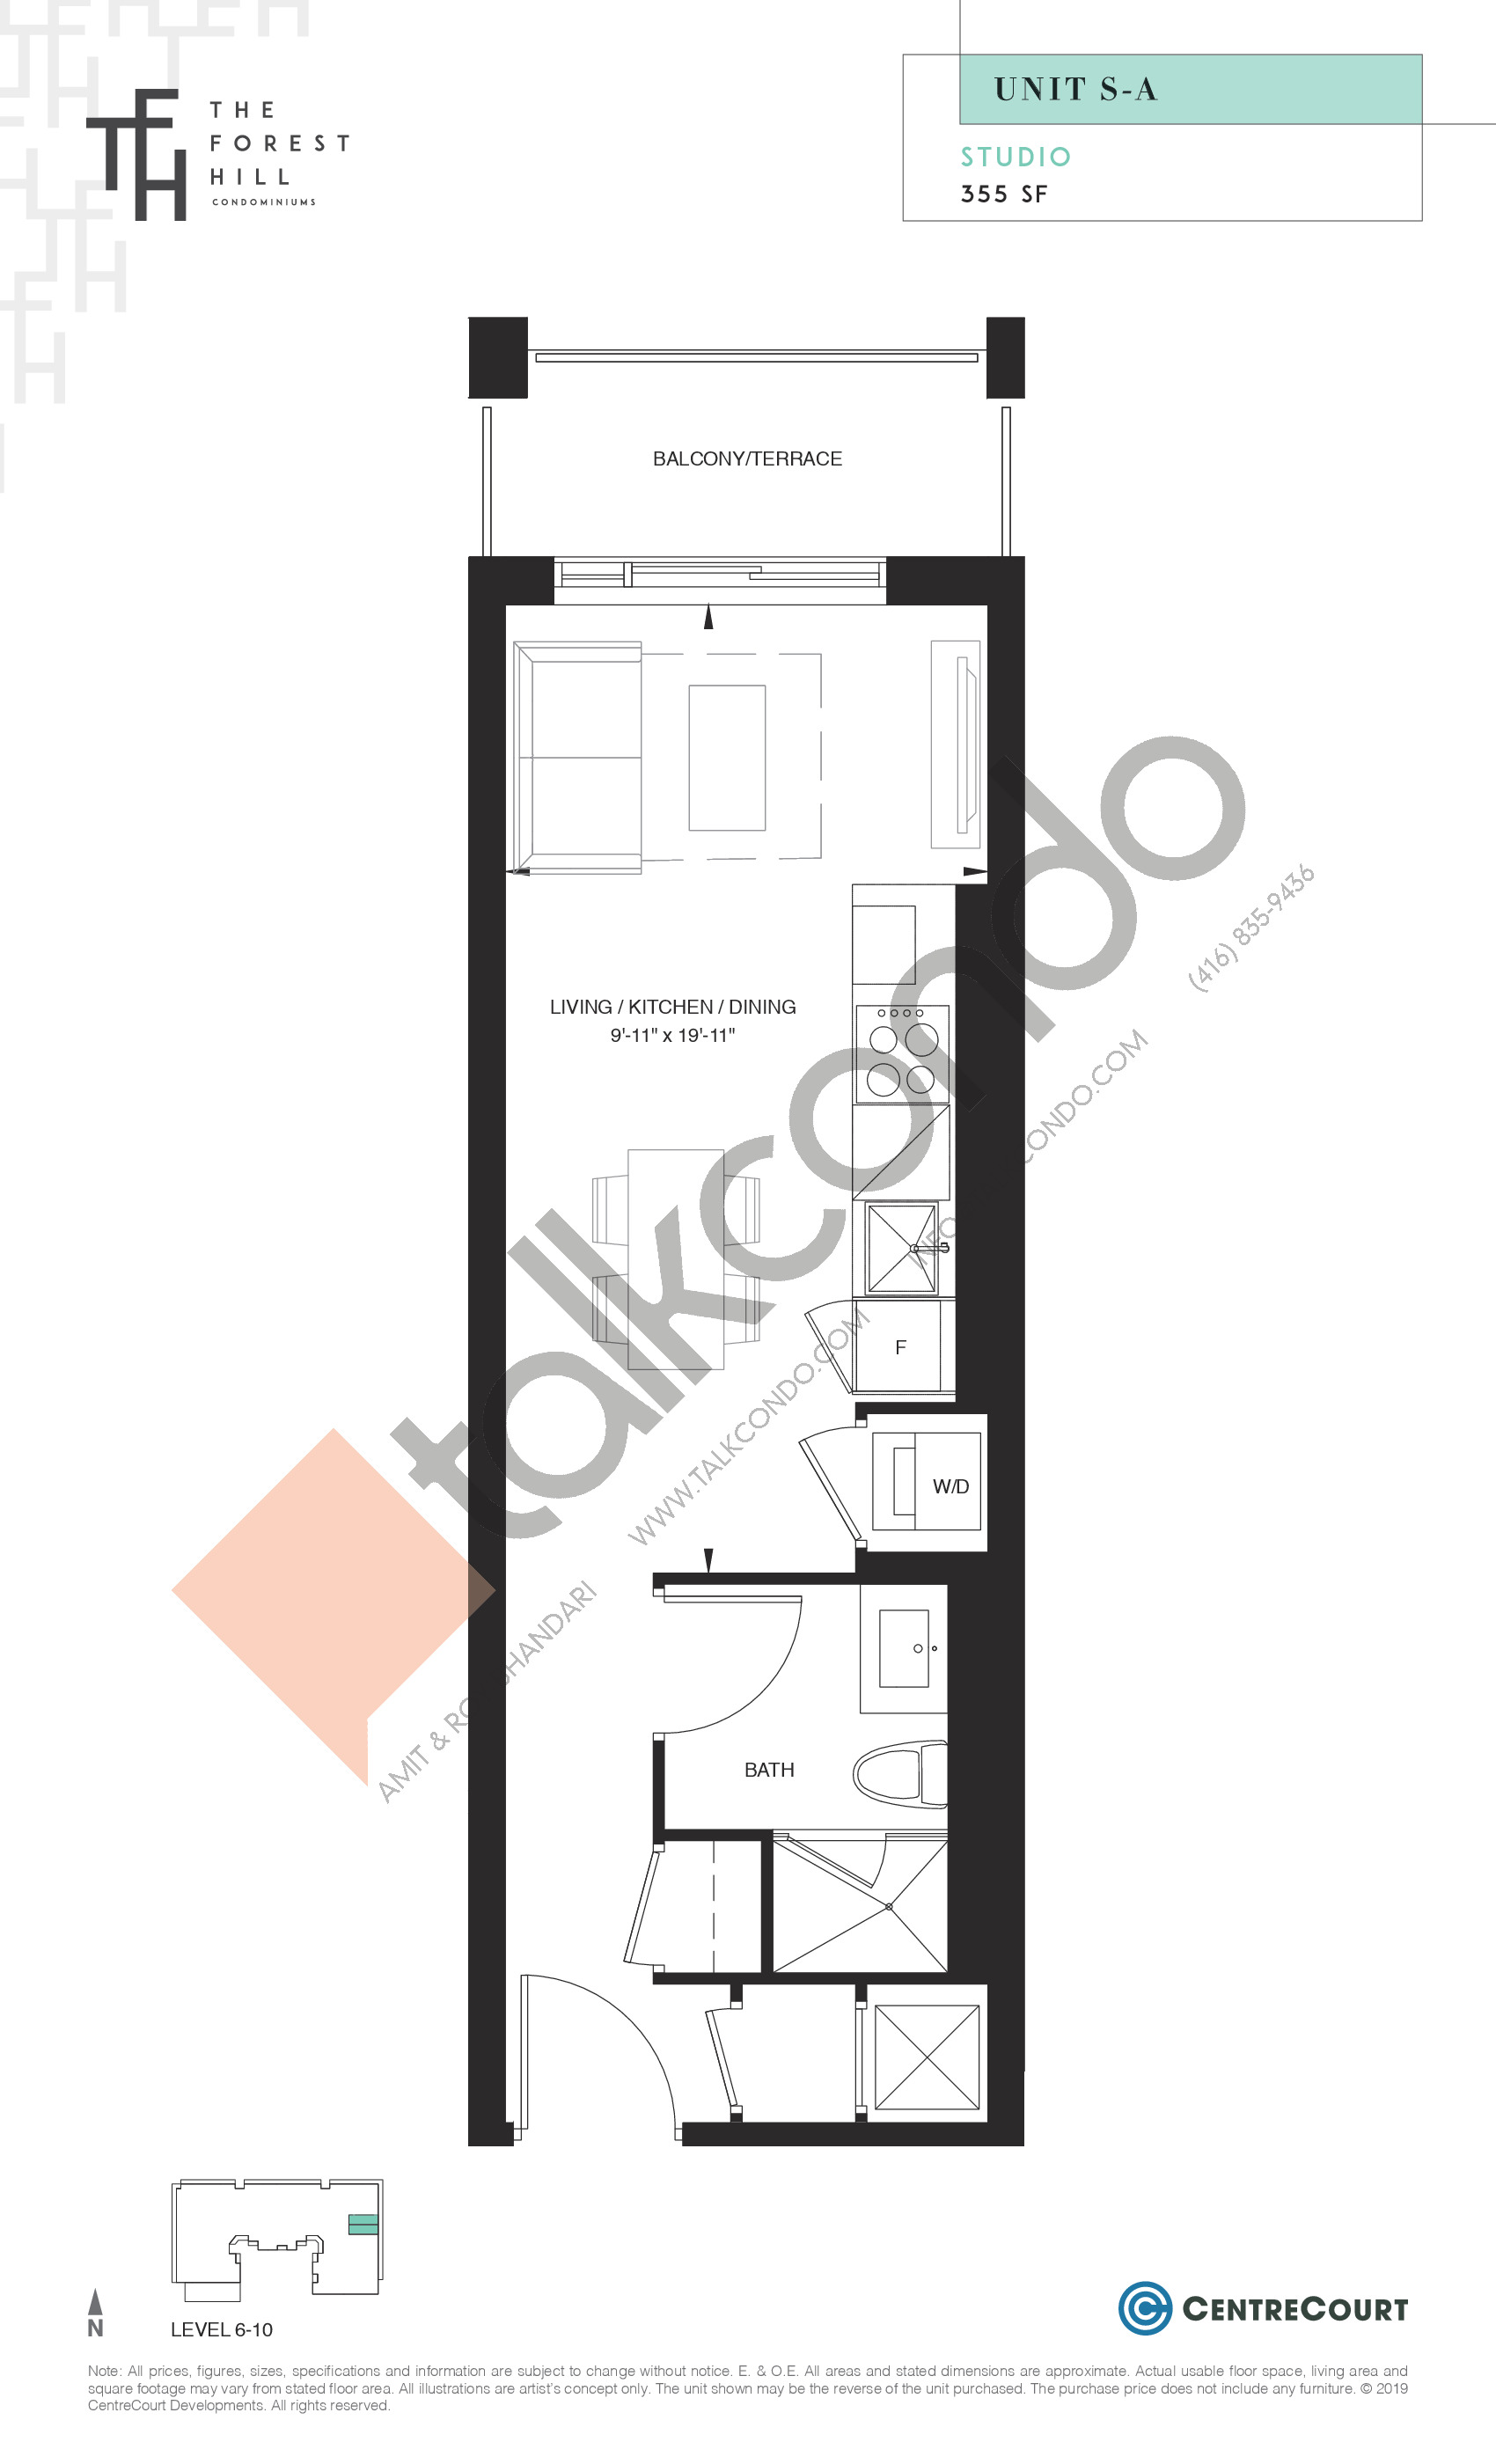 Unit S-A Floor Plan at The Forest Hill Condos - 355 sq.ft